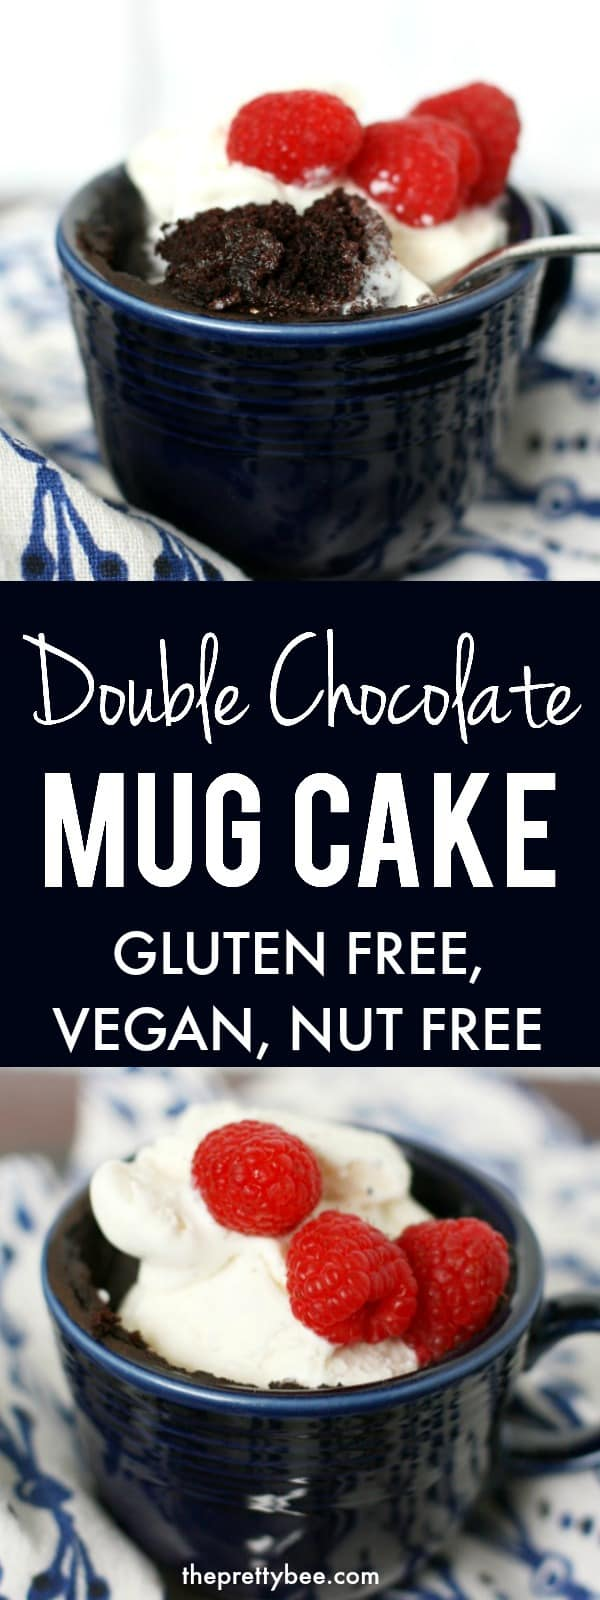 This gluten free and vegan chocolate mug cake is just the thing to make after a long day! Treat yourself with this decadent single serving dessert recipe. #glutenfree #eggfree #vegan #nutfree #dairyfree